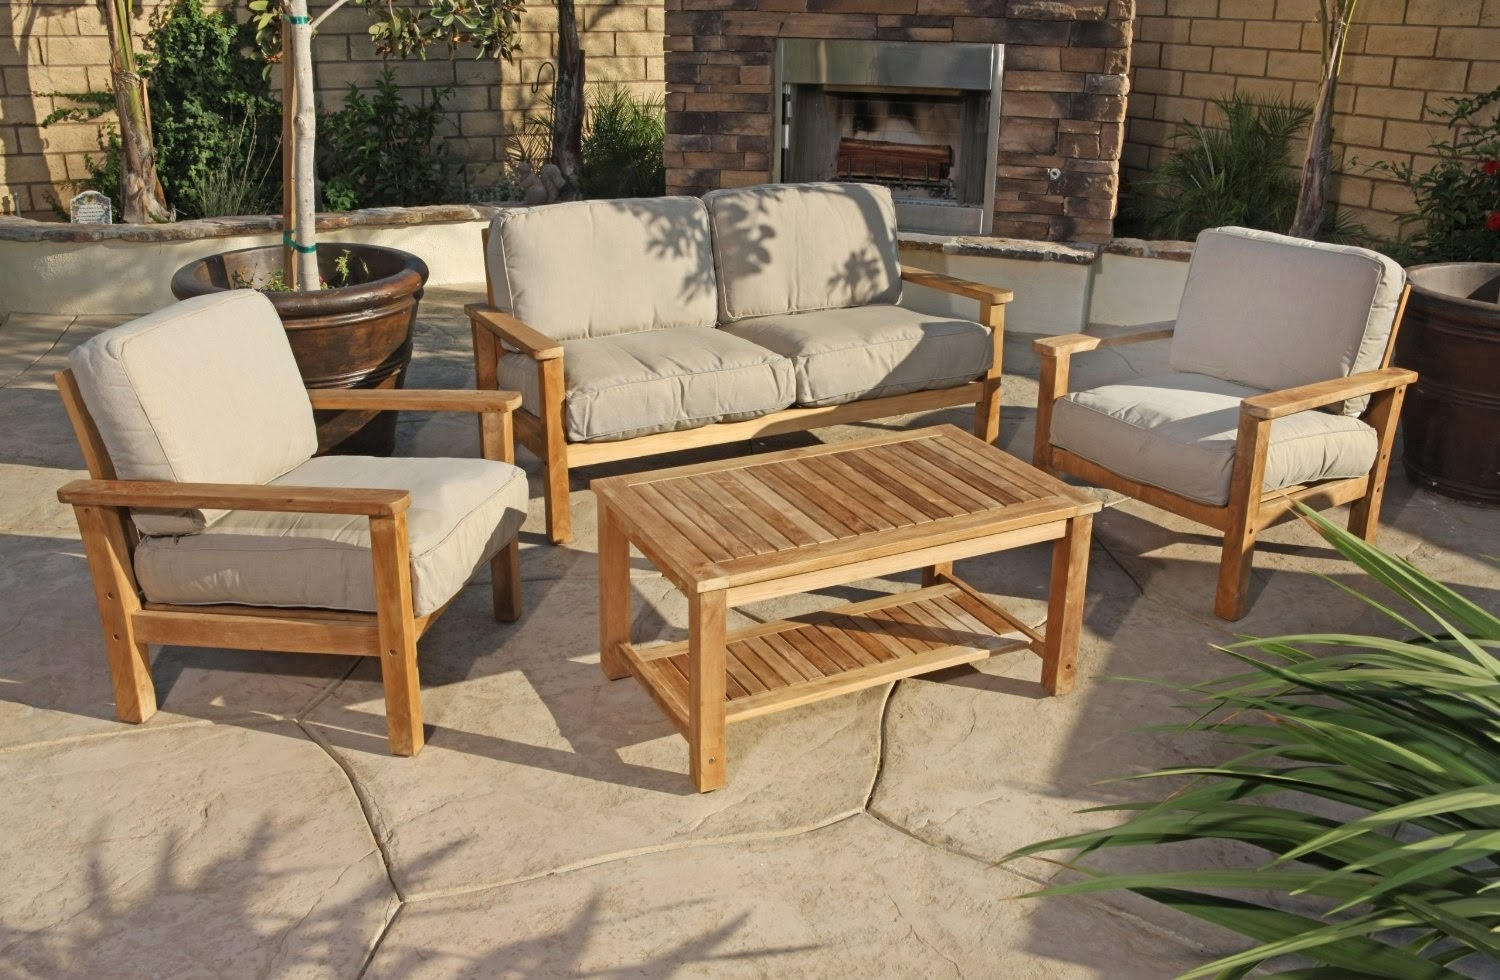 Well Known Teak Patio Conversation Sets For Patio : Teak Patio Conversation Sets Outdoor Lounge Furniture The (View 14 of 15)